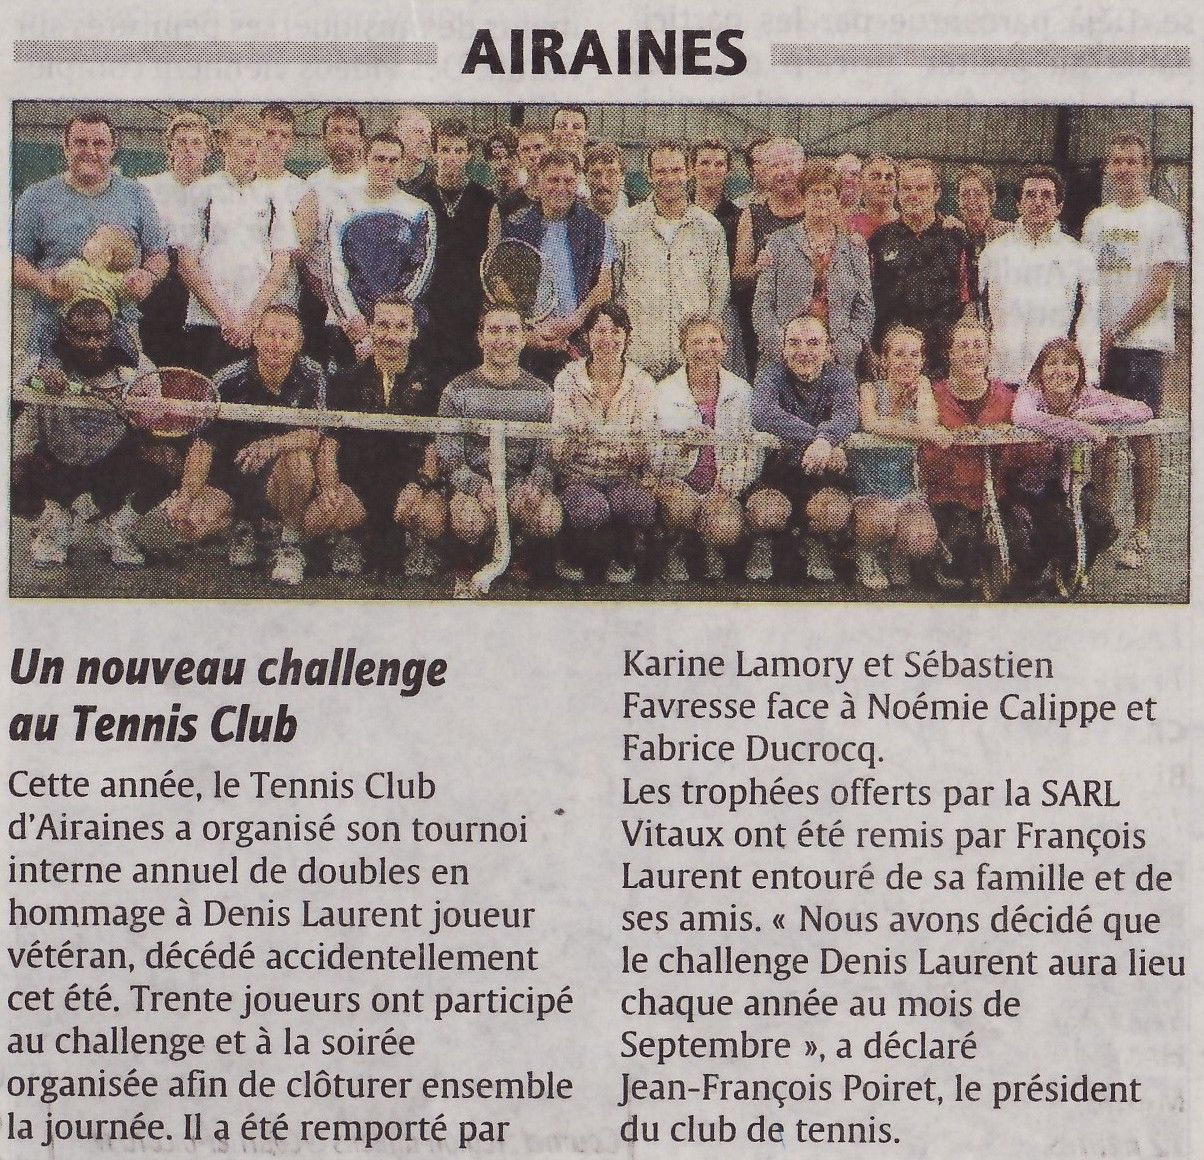 article paru dans le courrier picard le 11/10/2008